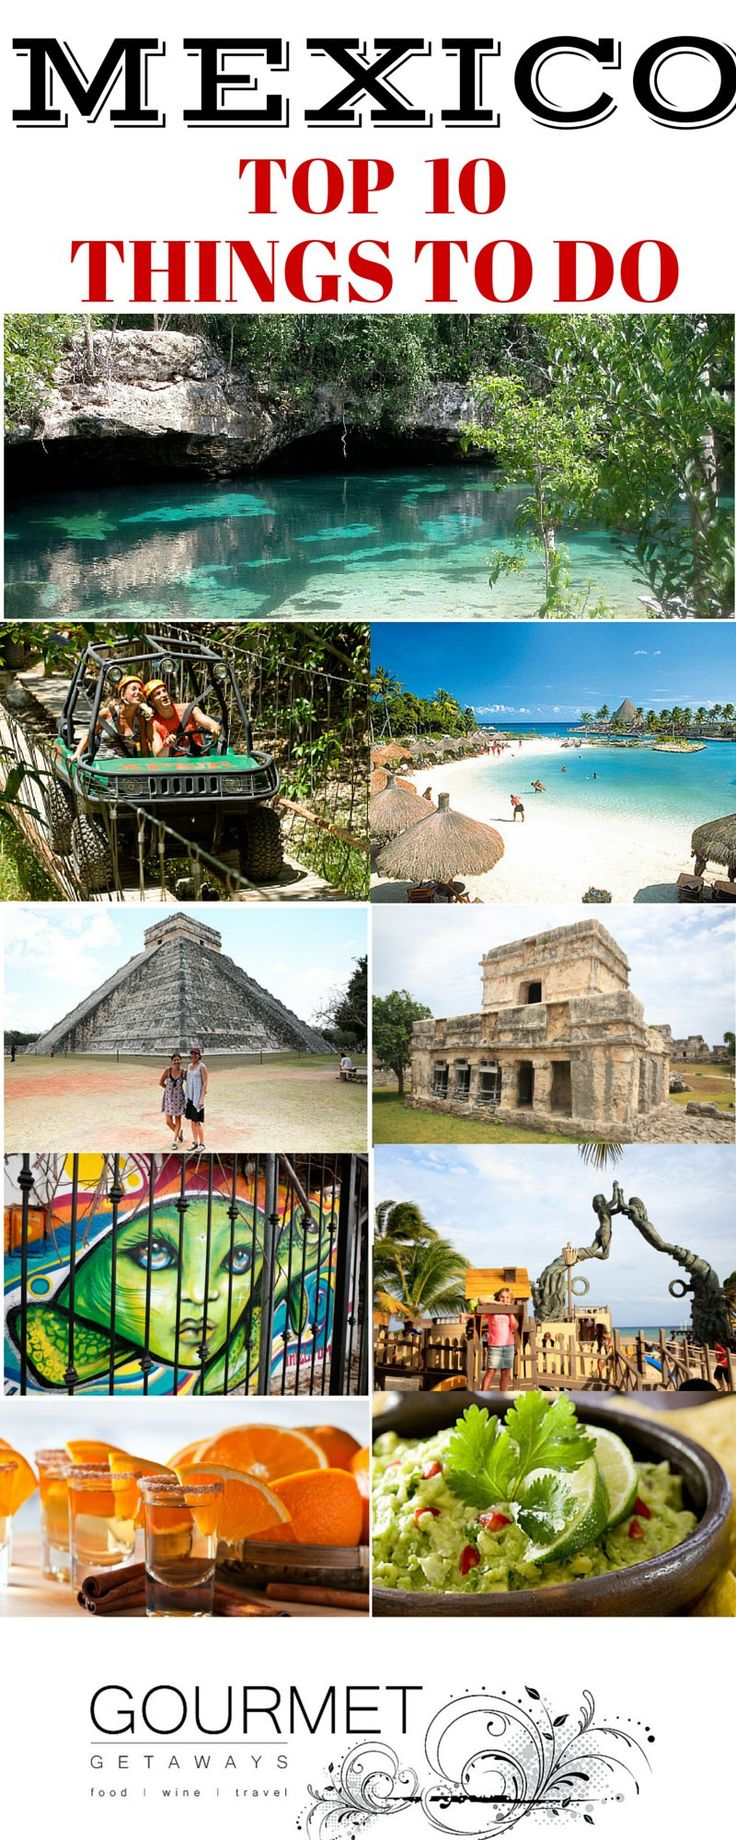 Top 10 Things to Do in Mexico